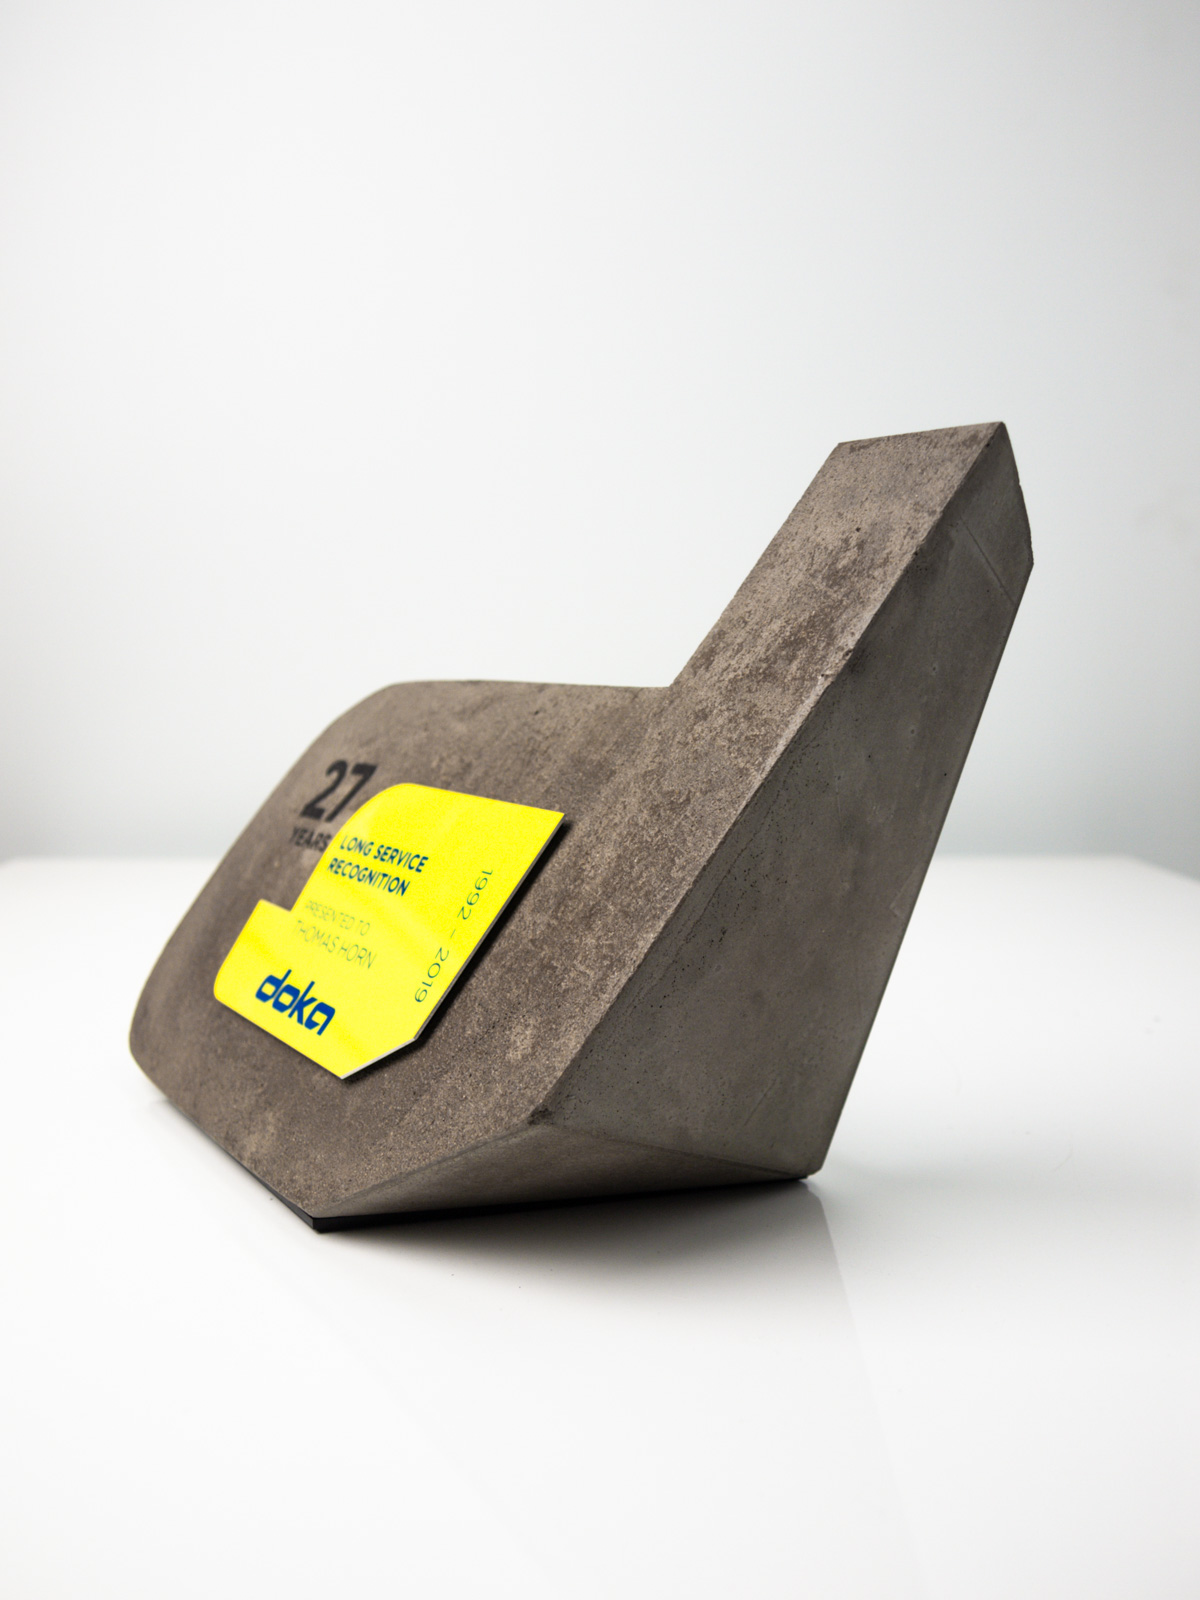 DOKA Long Service Recognition Concrete Trophies